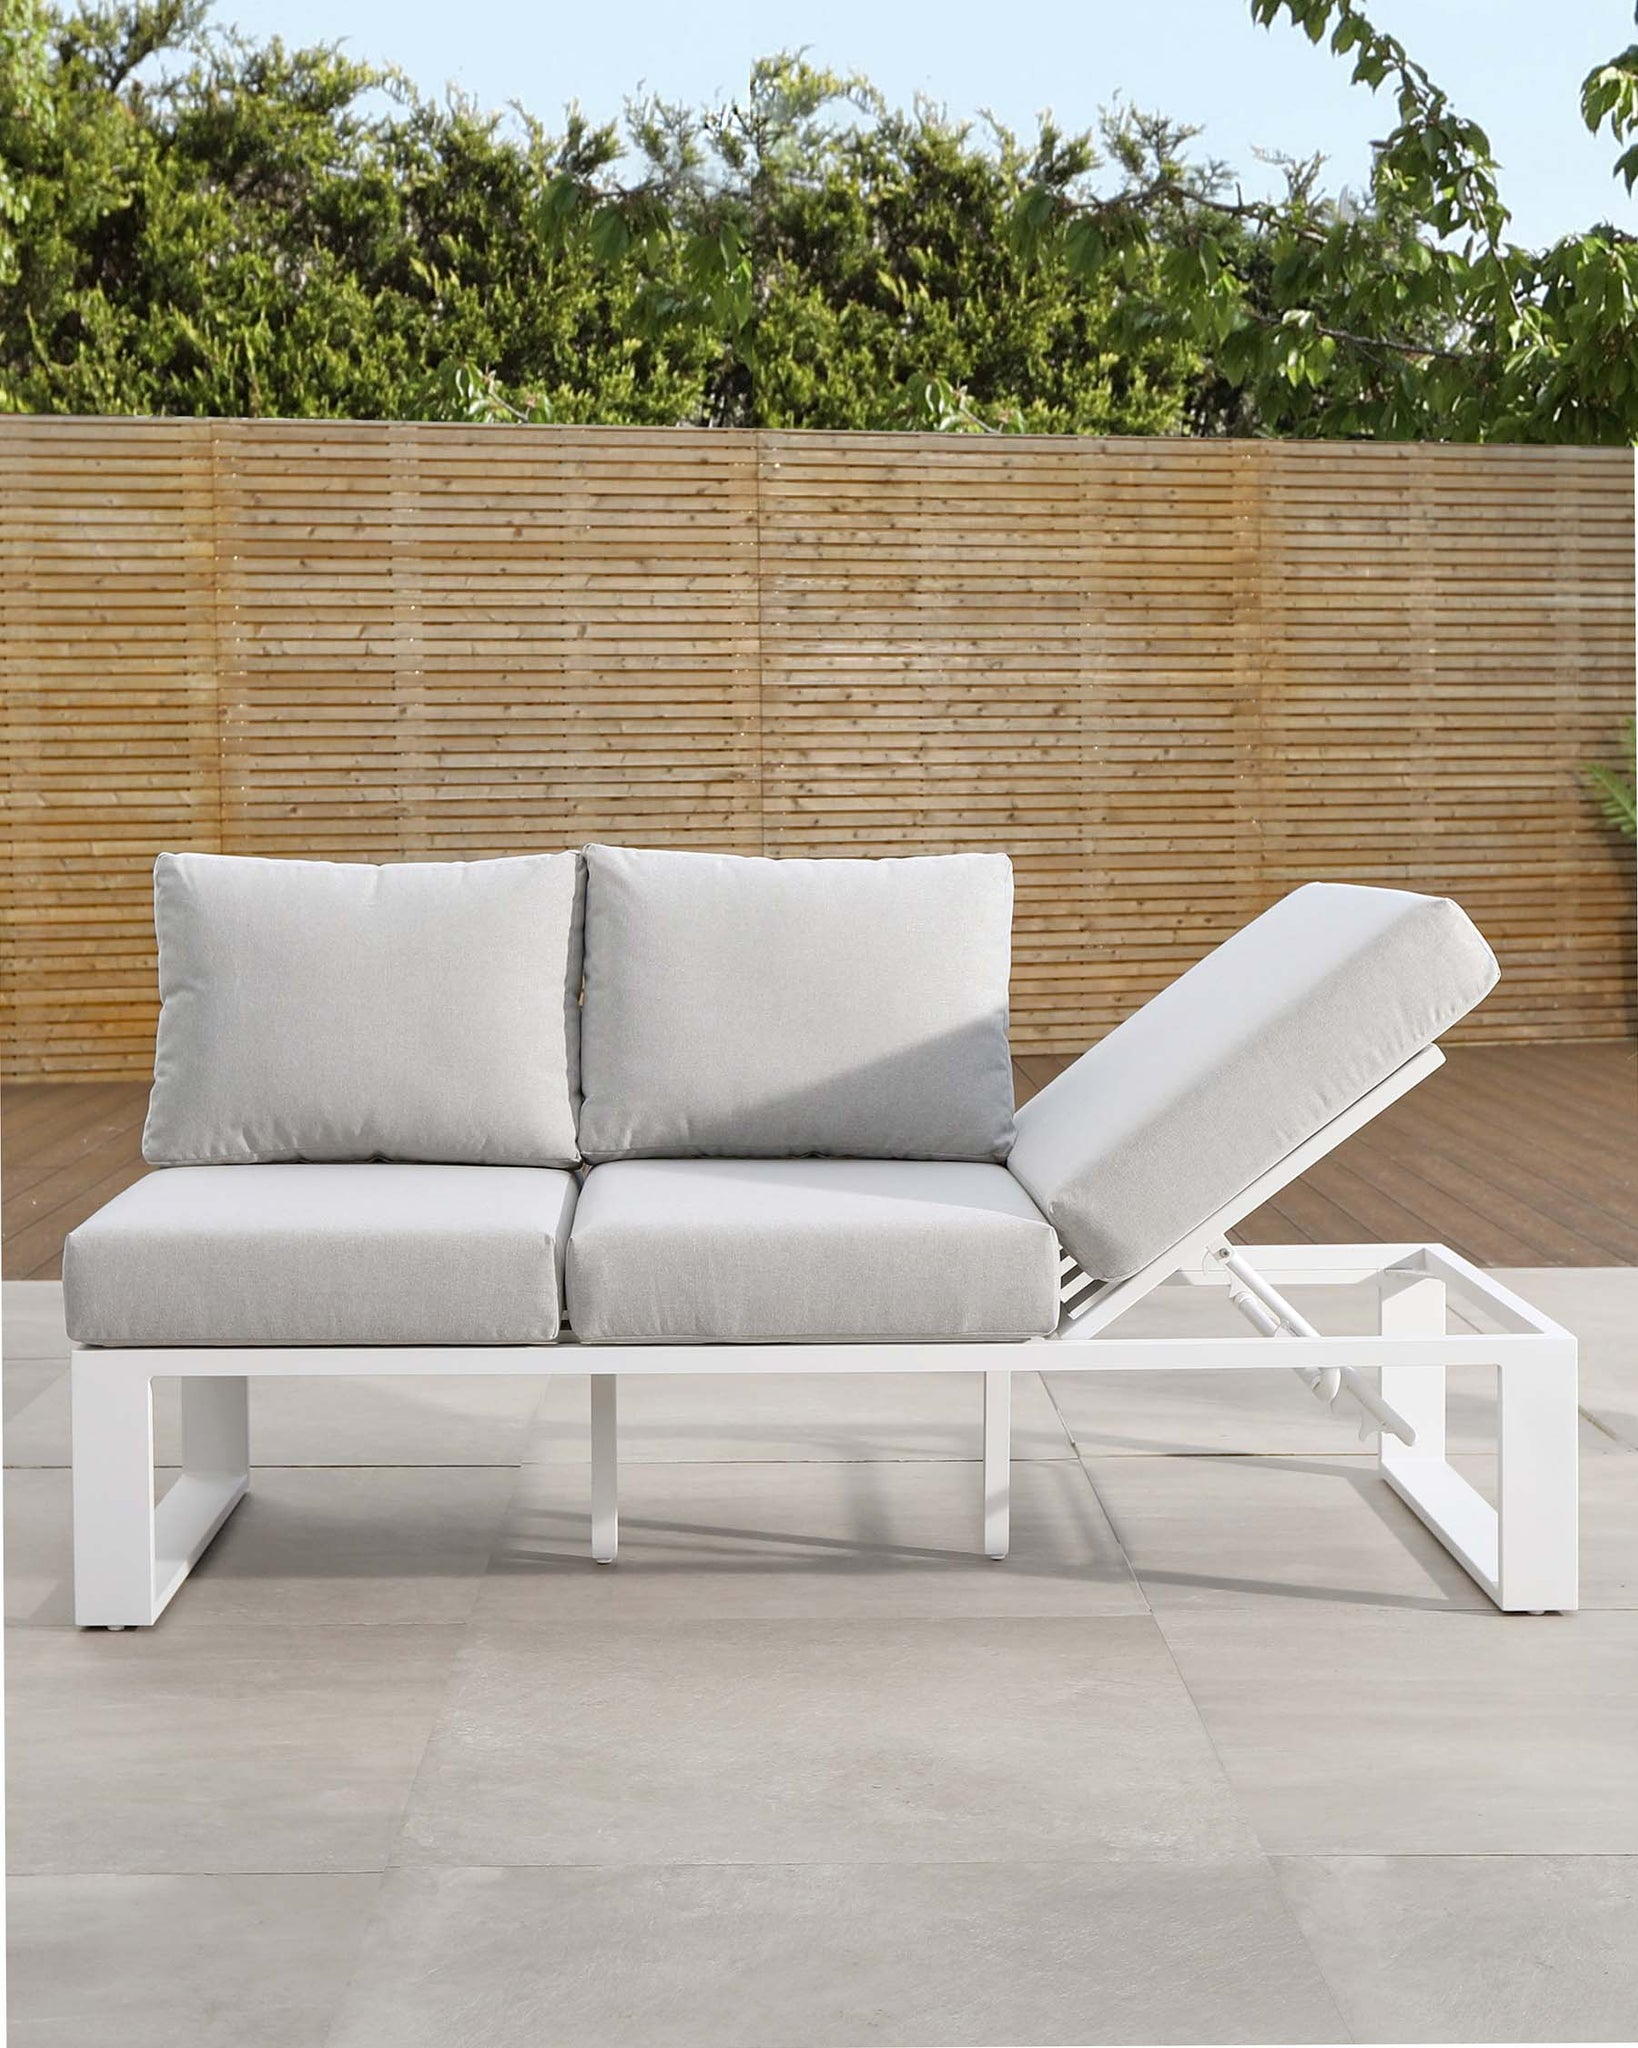 Savannah White Lift-up Garden Daybed